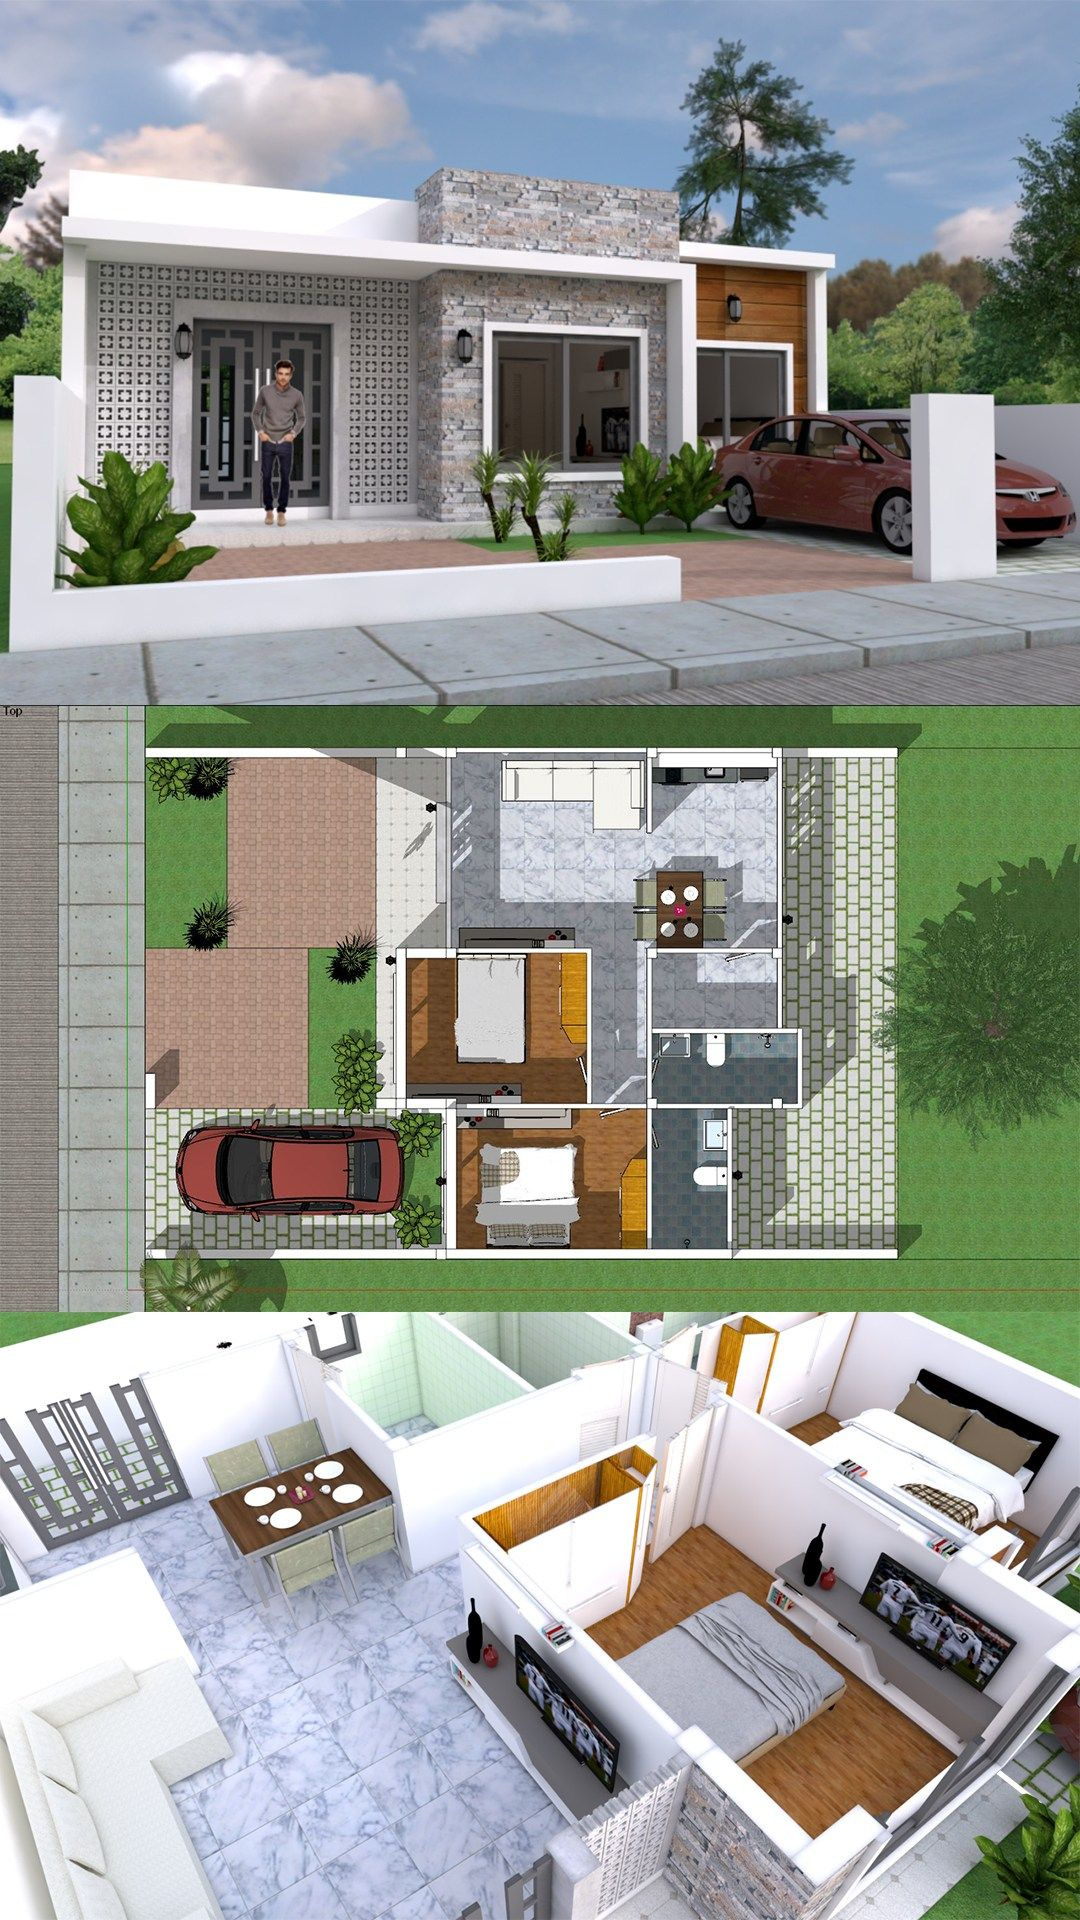 Architecture Simple House Designs Beautiful Simple Home Design Plan 10x8m with 2 Bedrooms Imagens